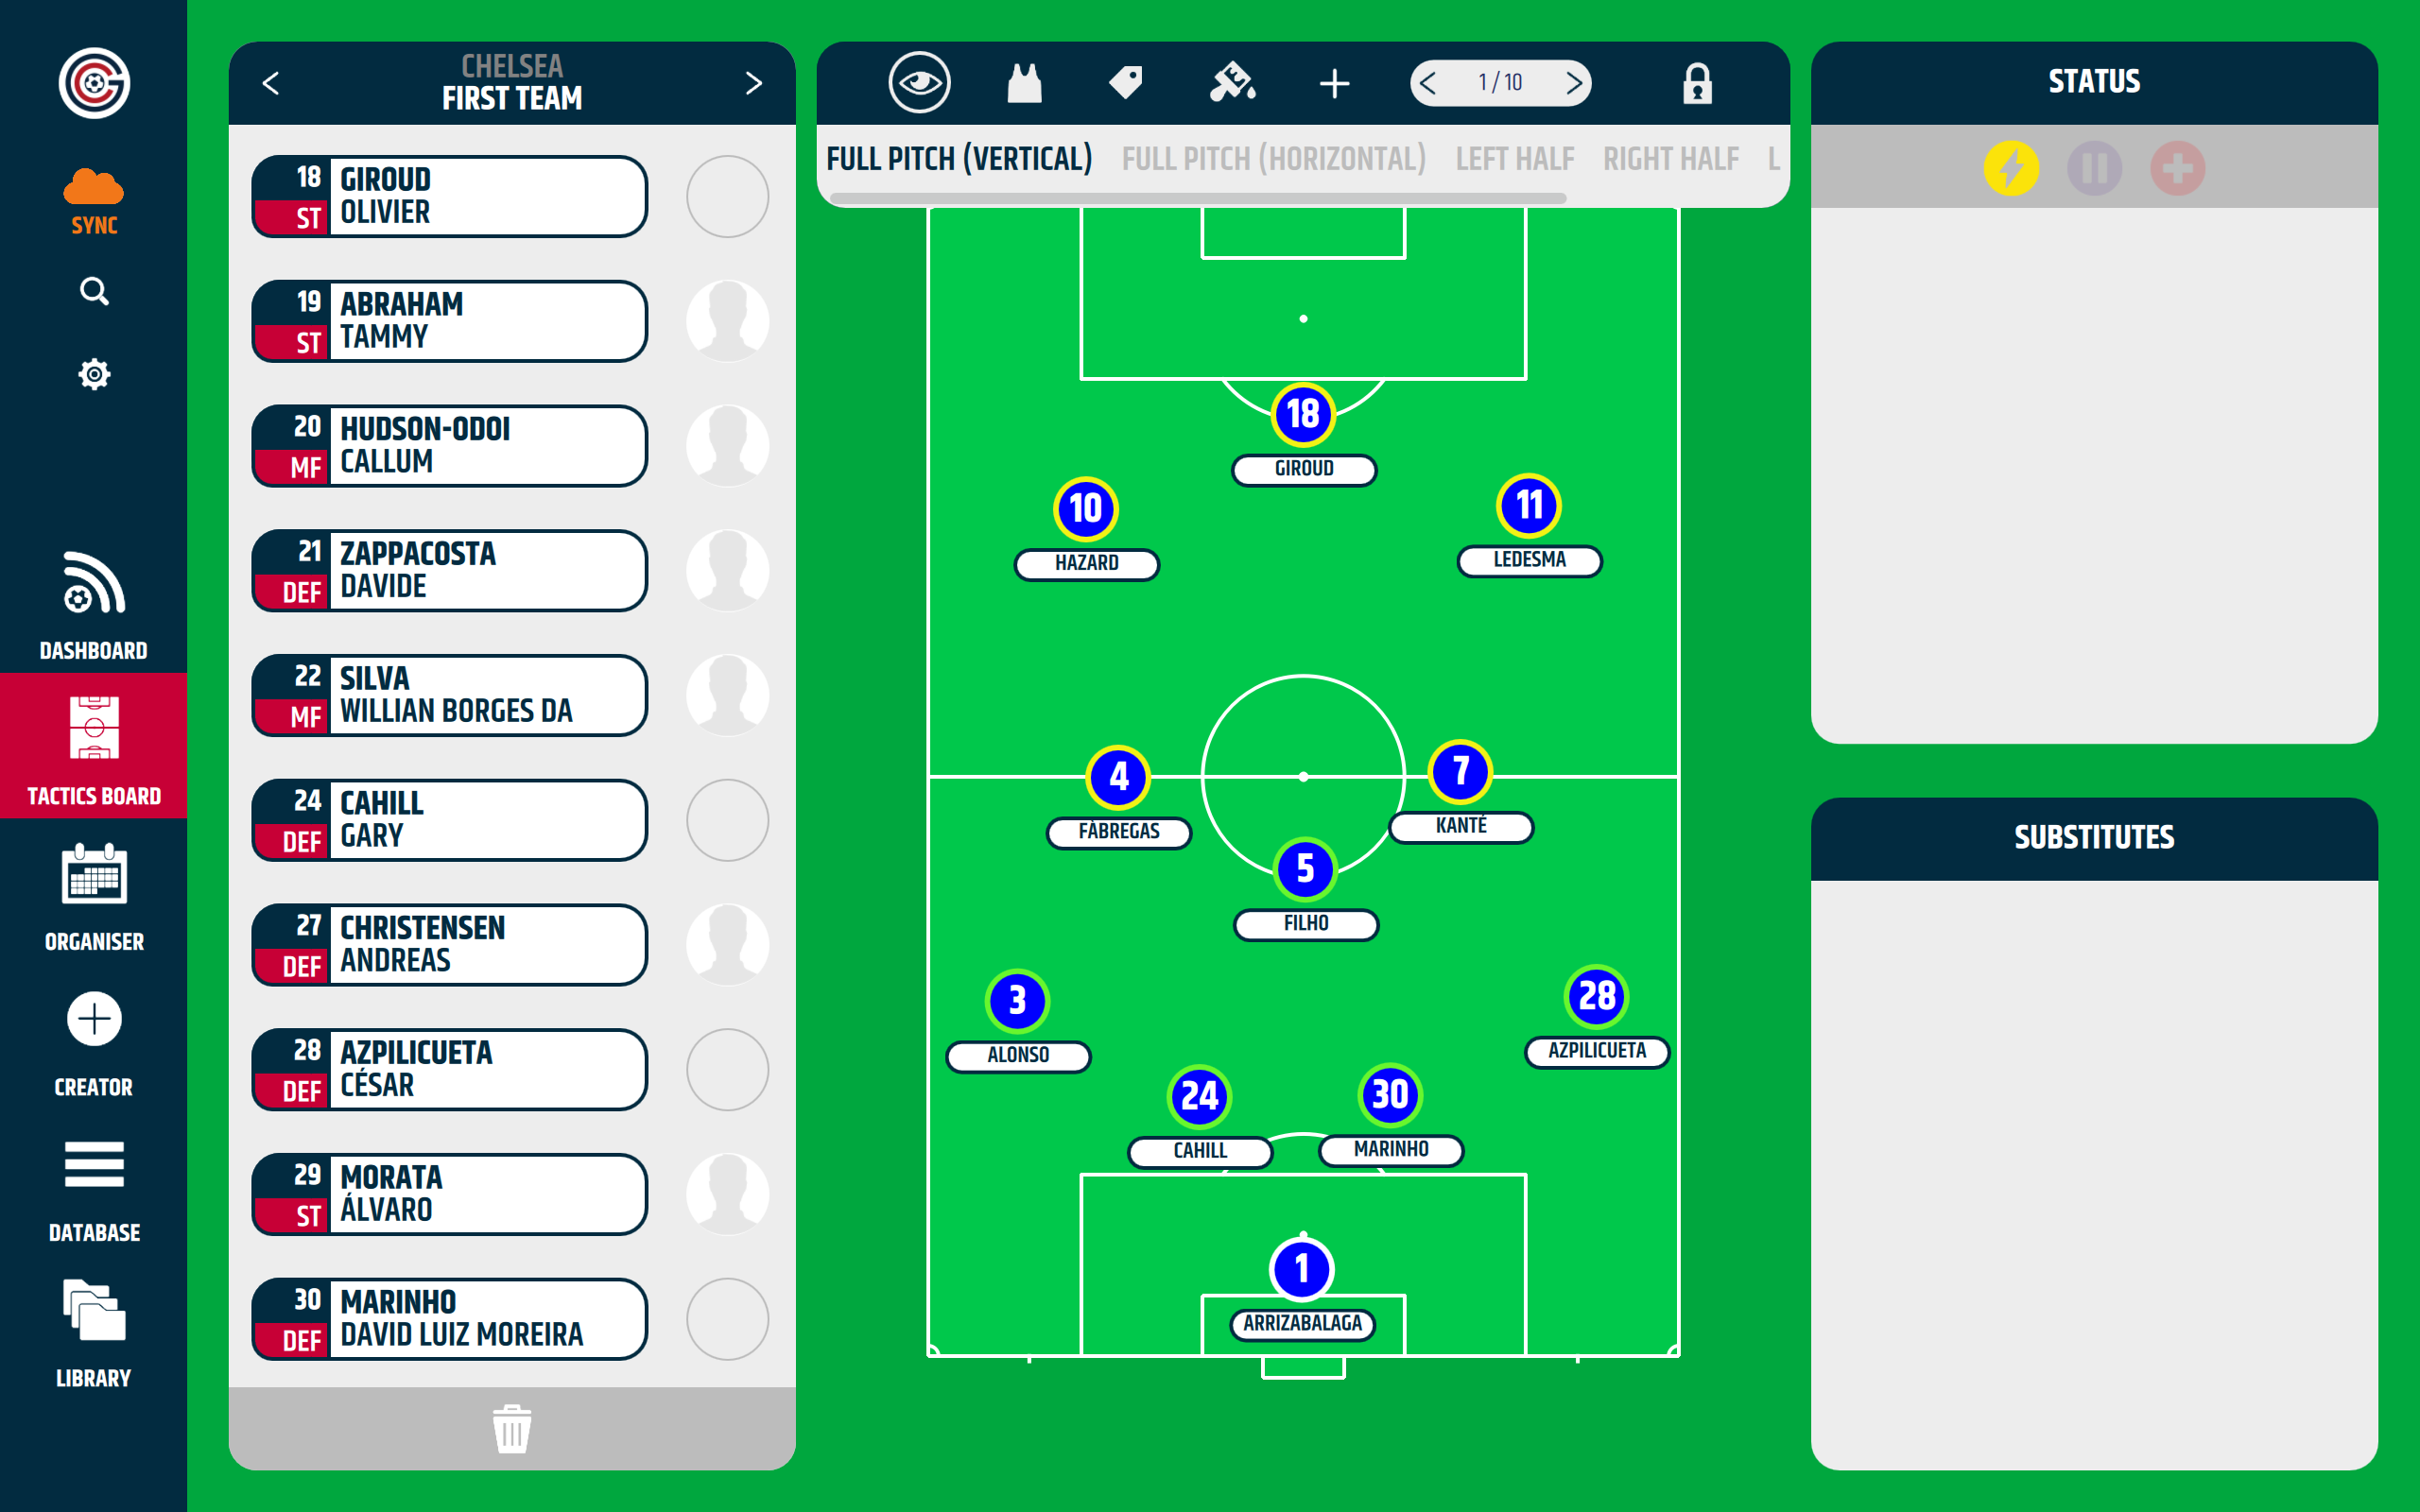 Tactics_board_-_Change_view_of_the_pitch.png